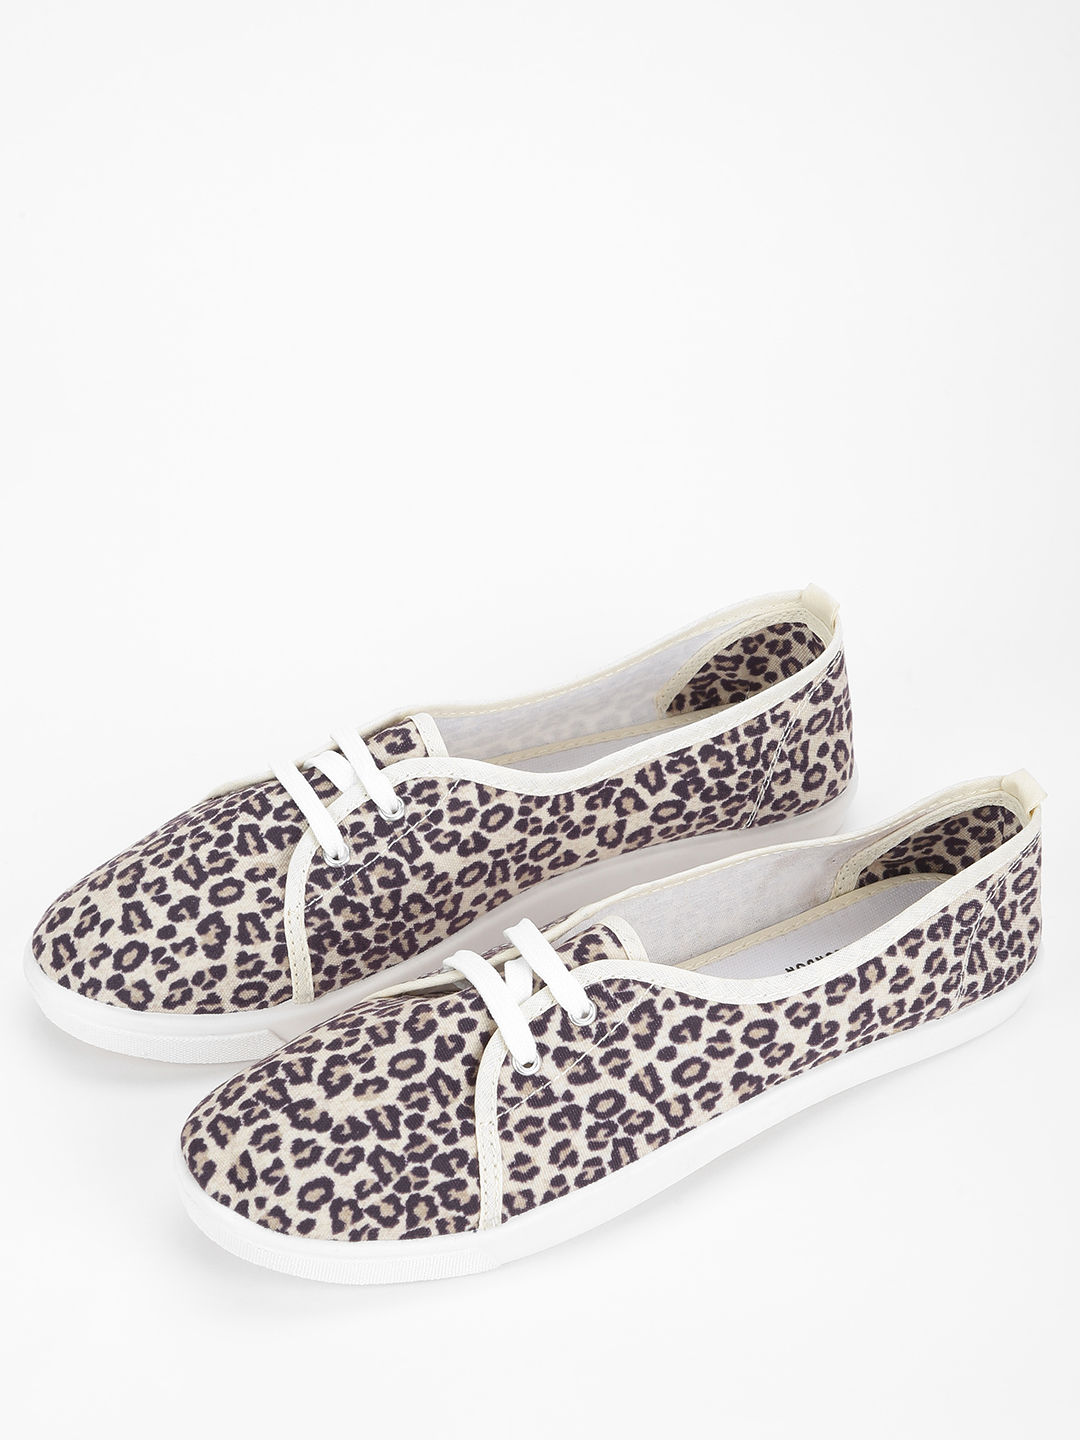 KOOVS Multi Leopard Print Plimsoll Shoes 1